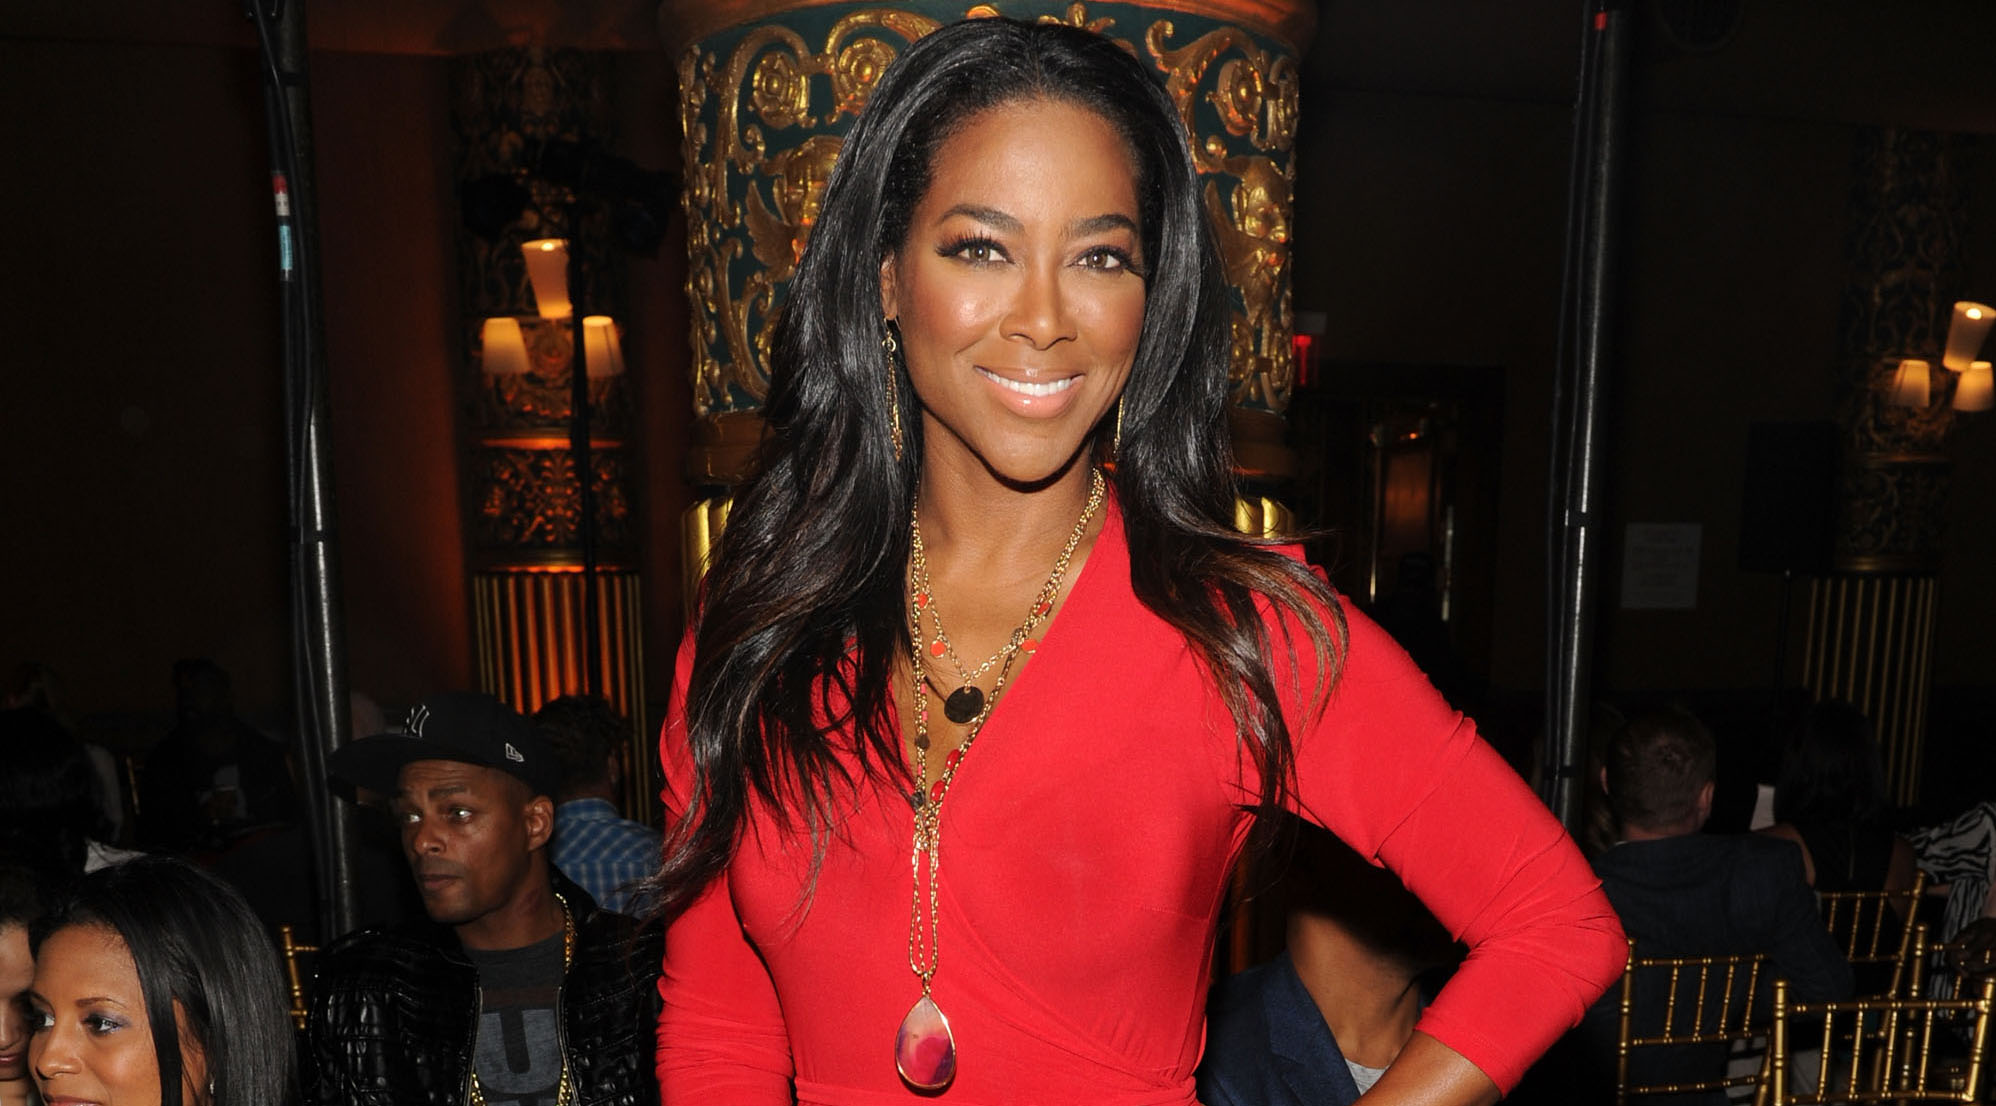 RHOA Fashion: Kenya Moore Shares Three Gorgeous Outfits From The Show